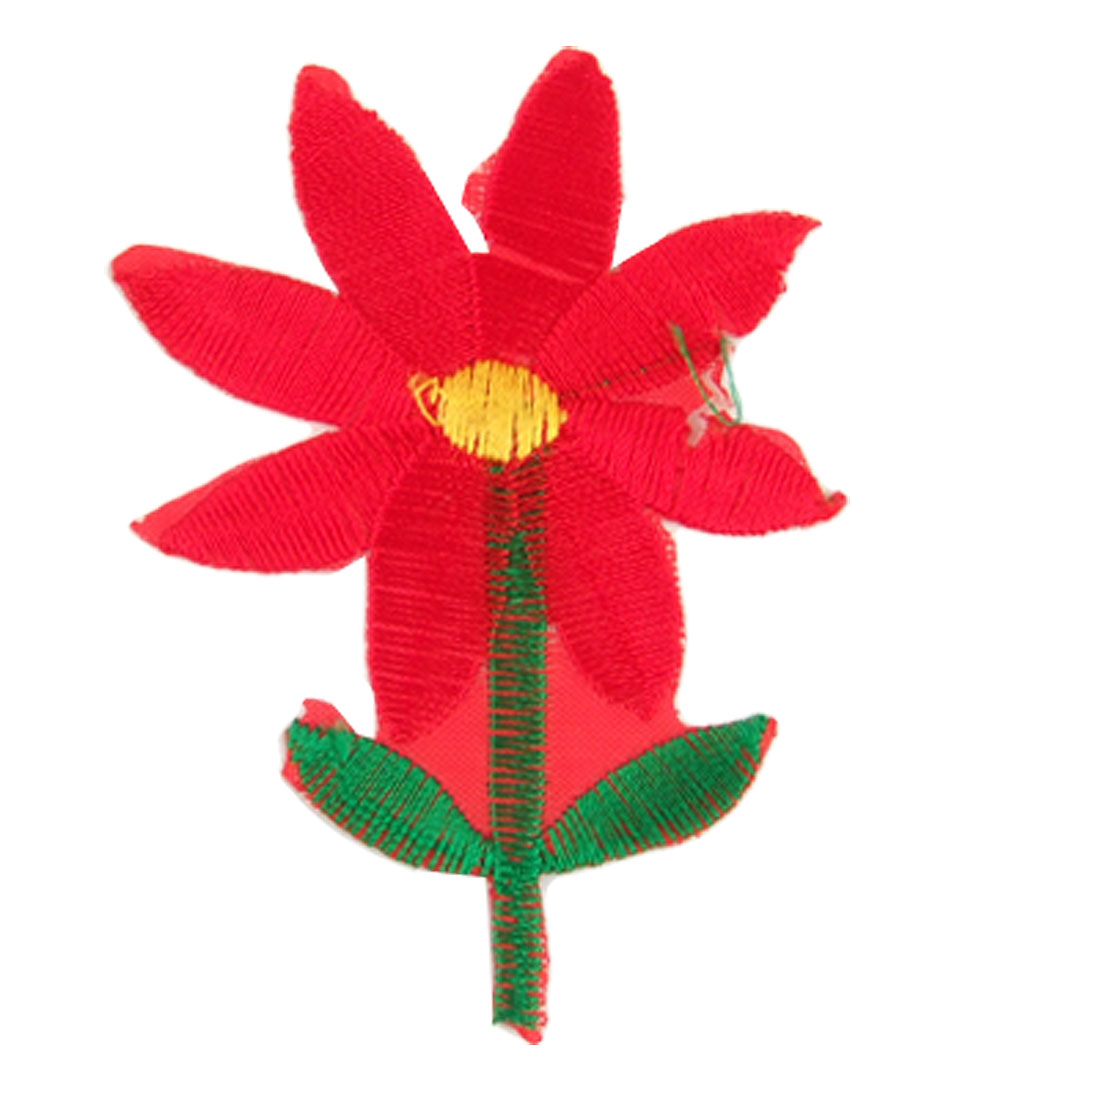 Green Leaves Red Flower Embroidered Fabric Patch Iron On Applique